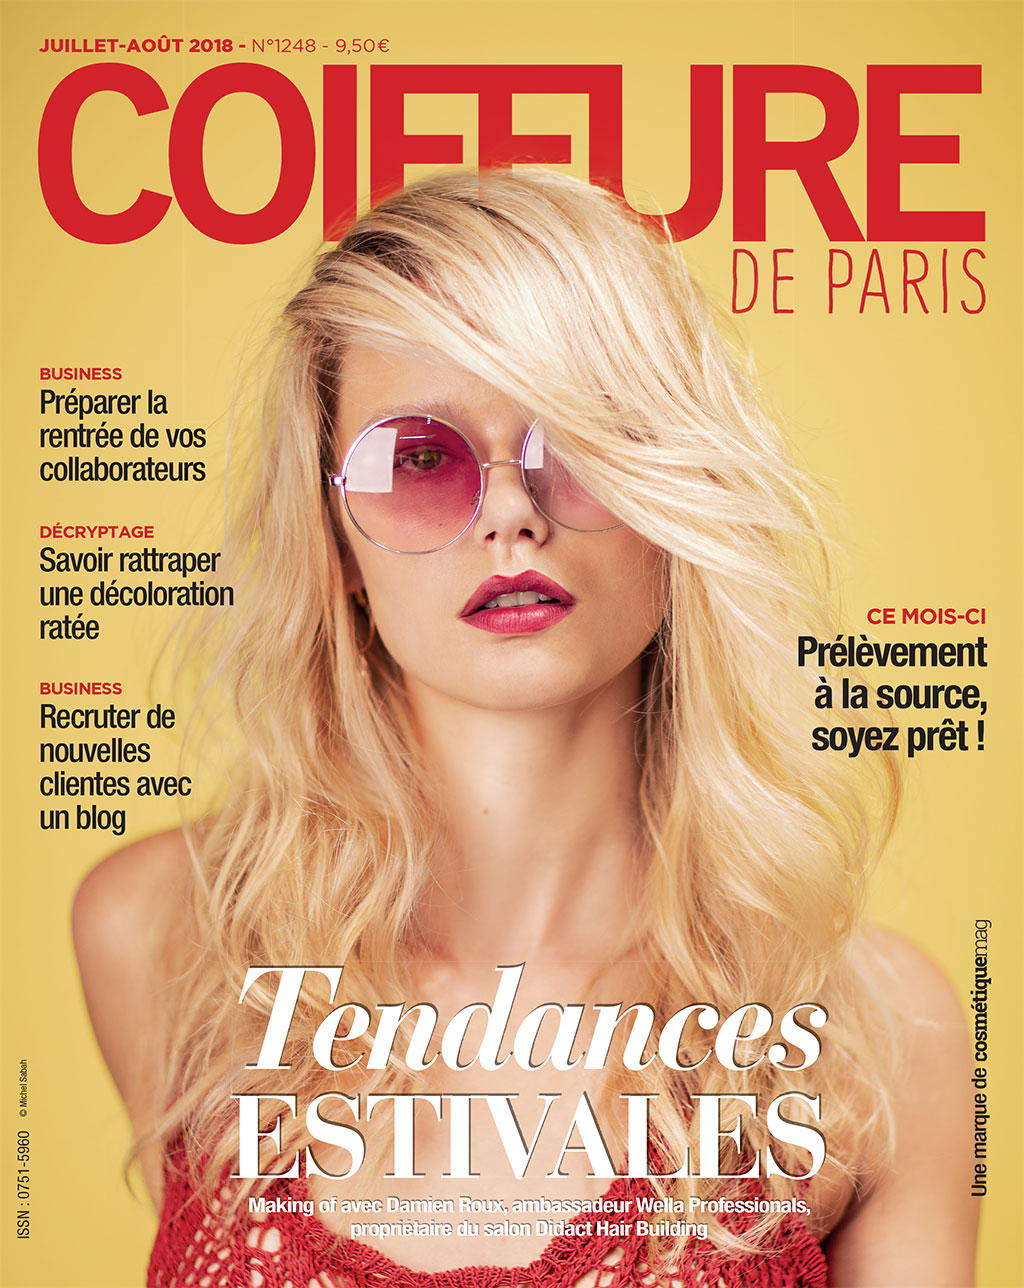 coiffure de paris le magazine r f rence des professionnels de la coiffure. Black Bedroom Furniture Sets. Home Design Ideas